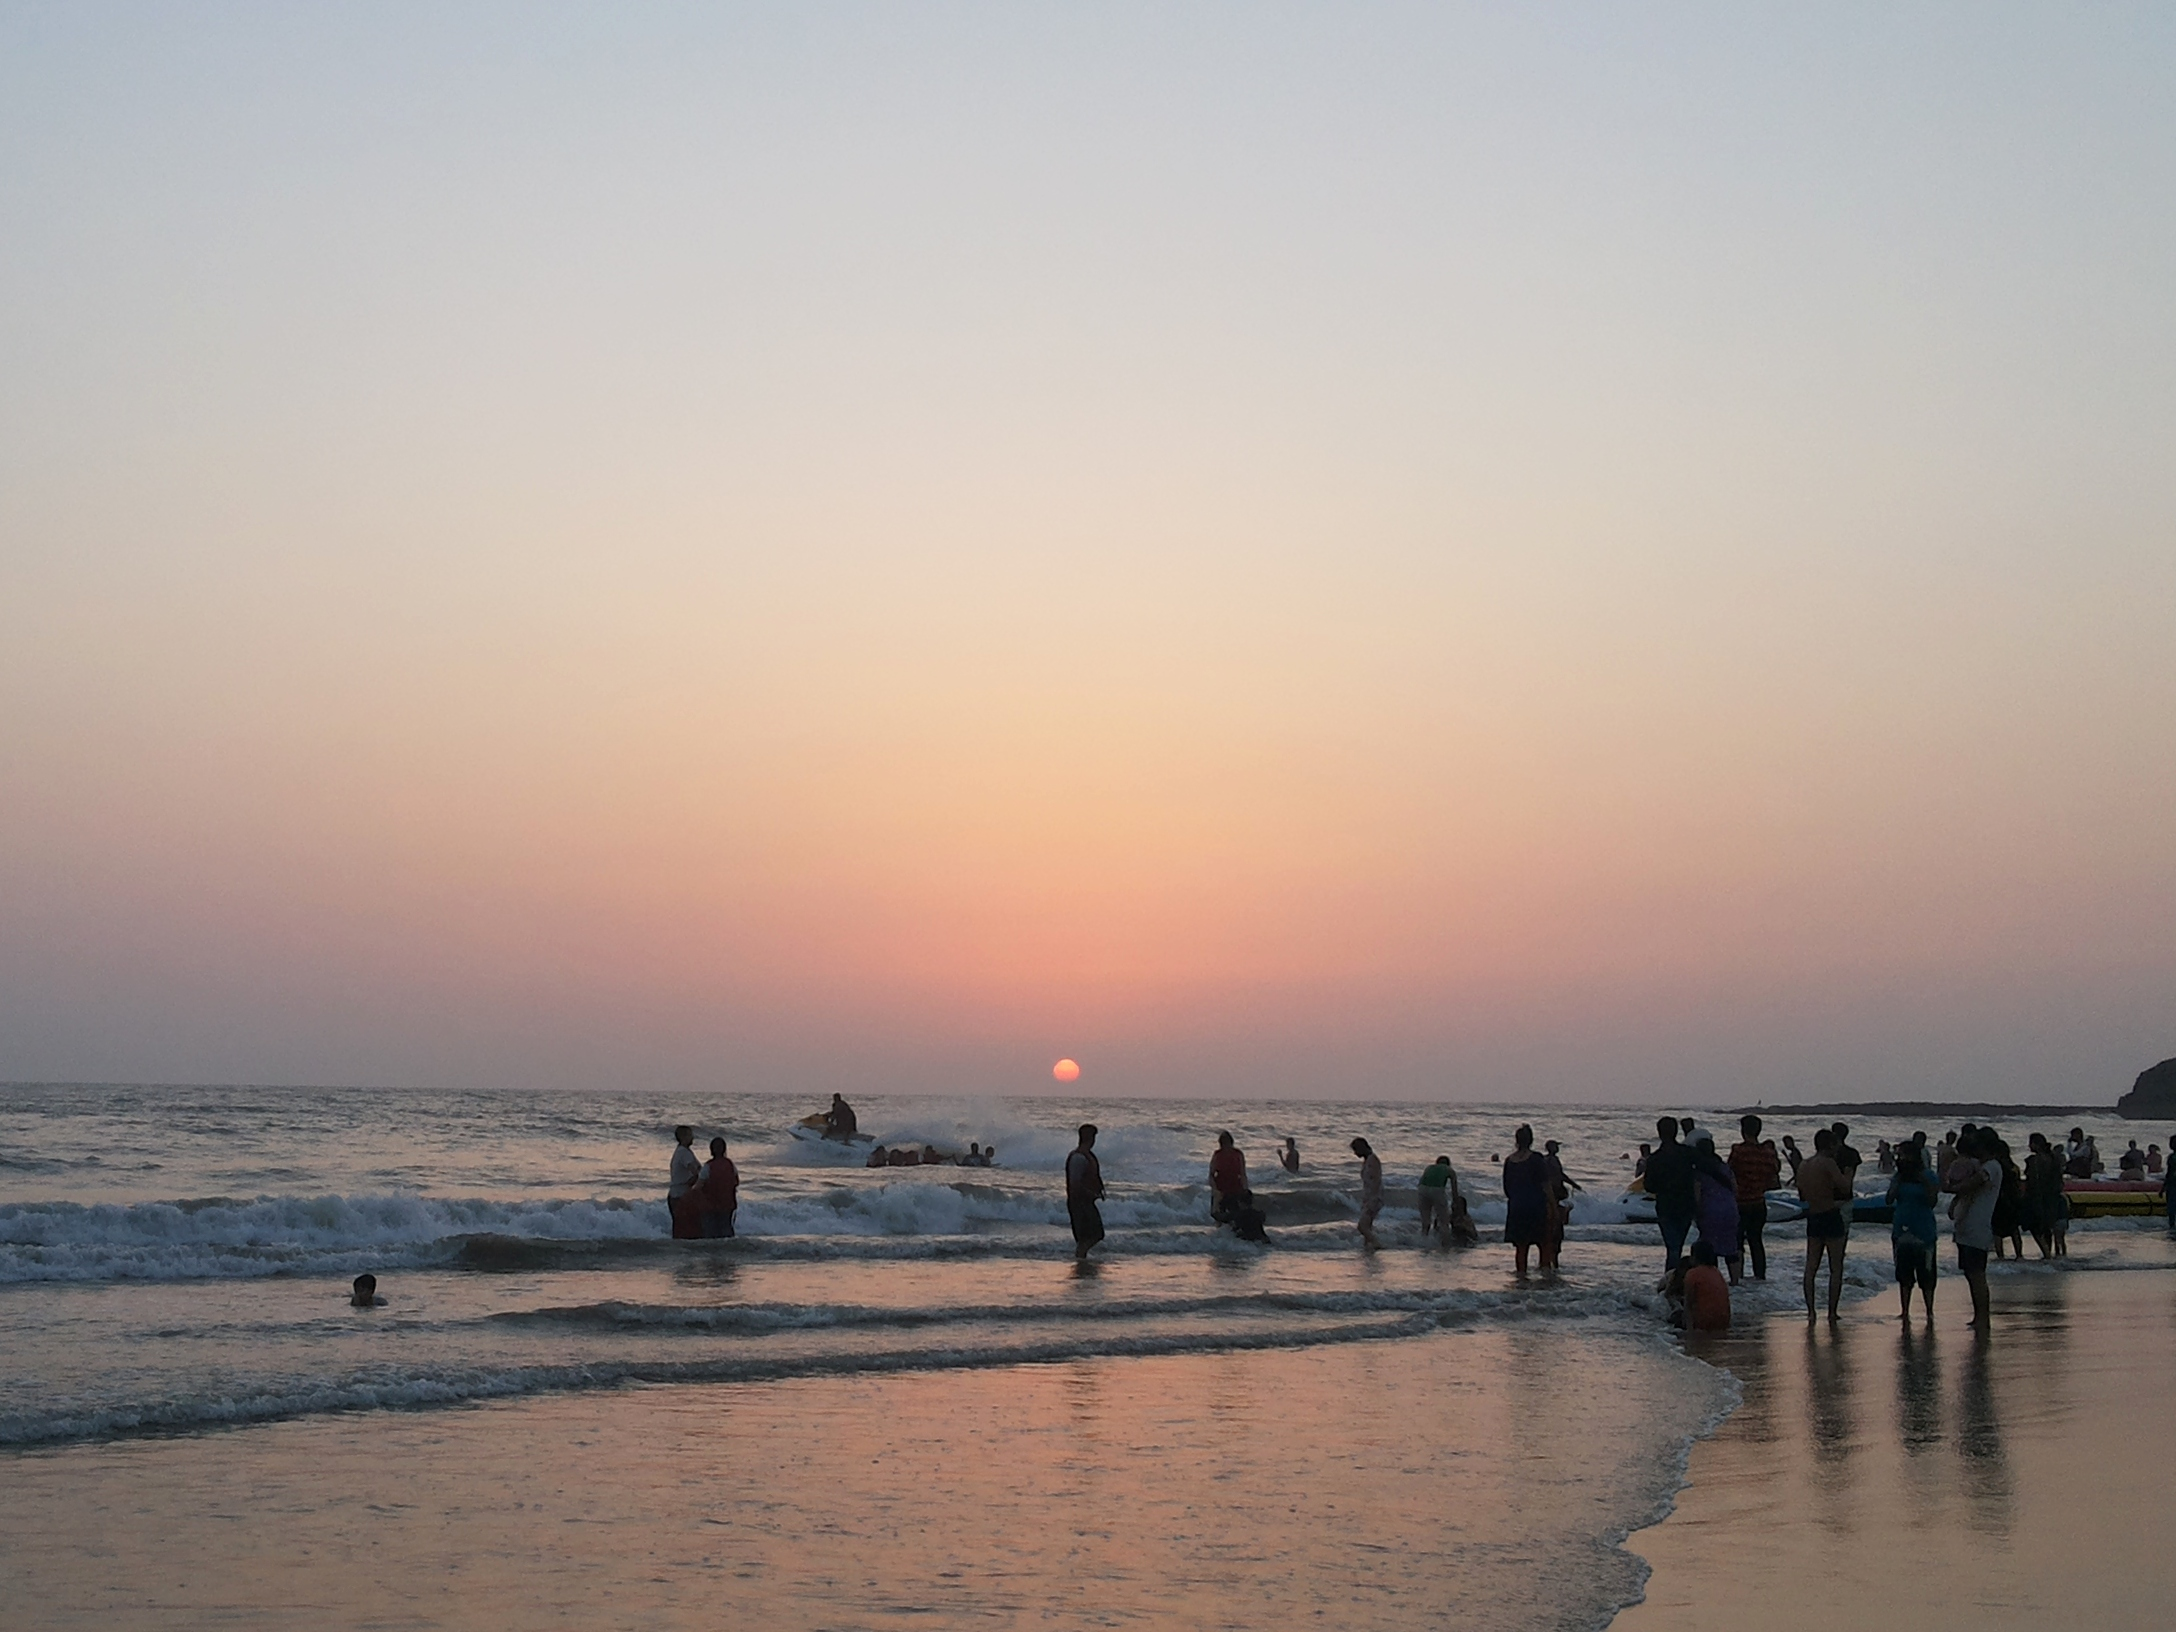 Alibaug - Amazing Beaches in the Konkan Coast of Maharashtra